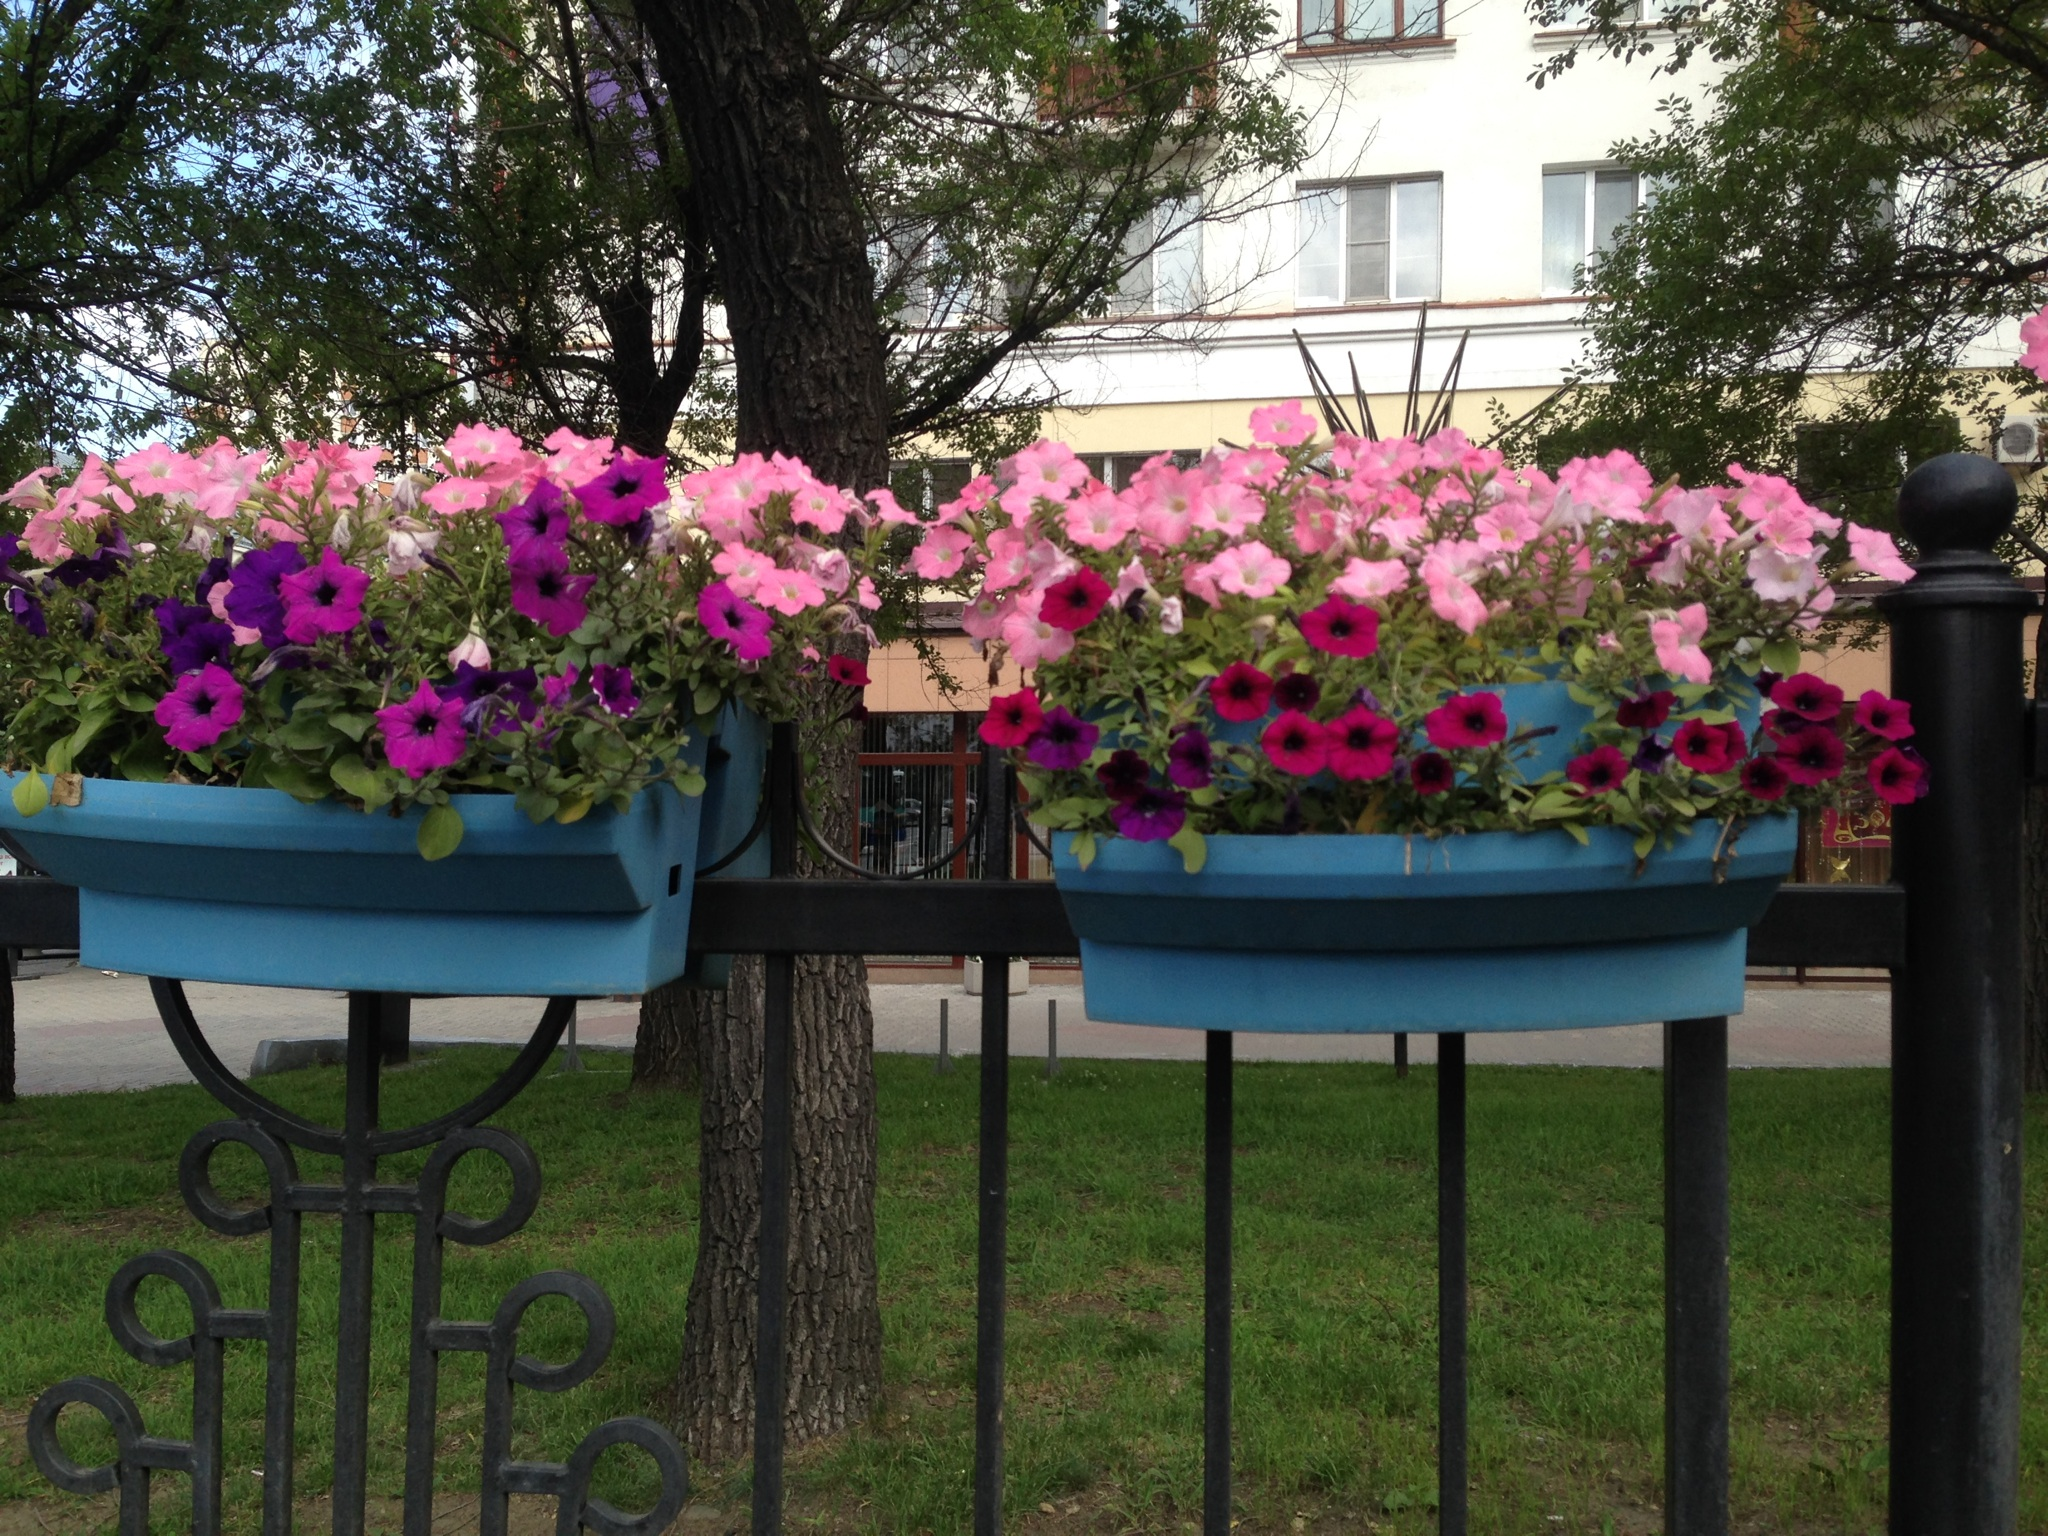 Flowers on the street